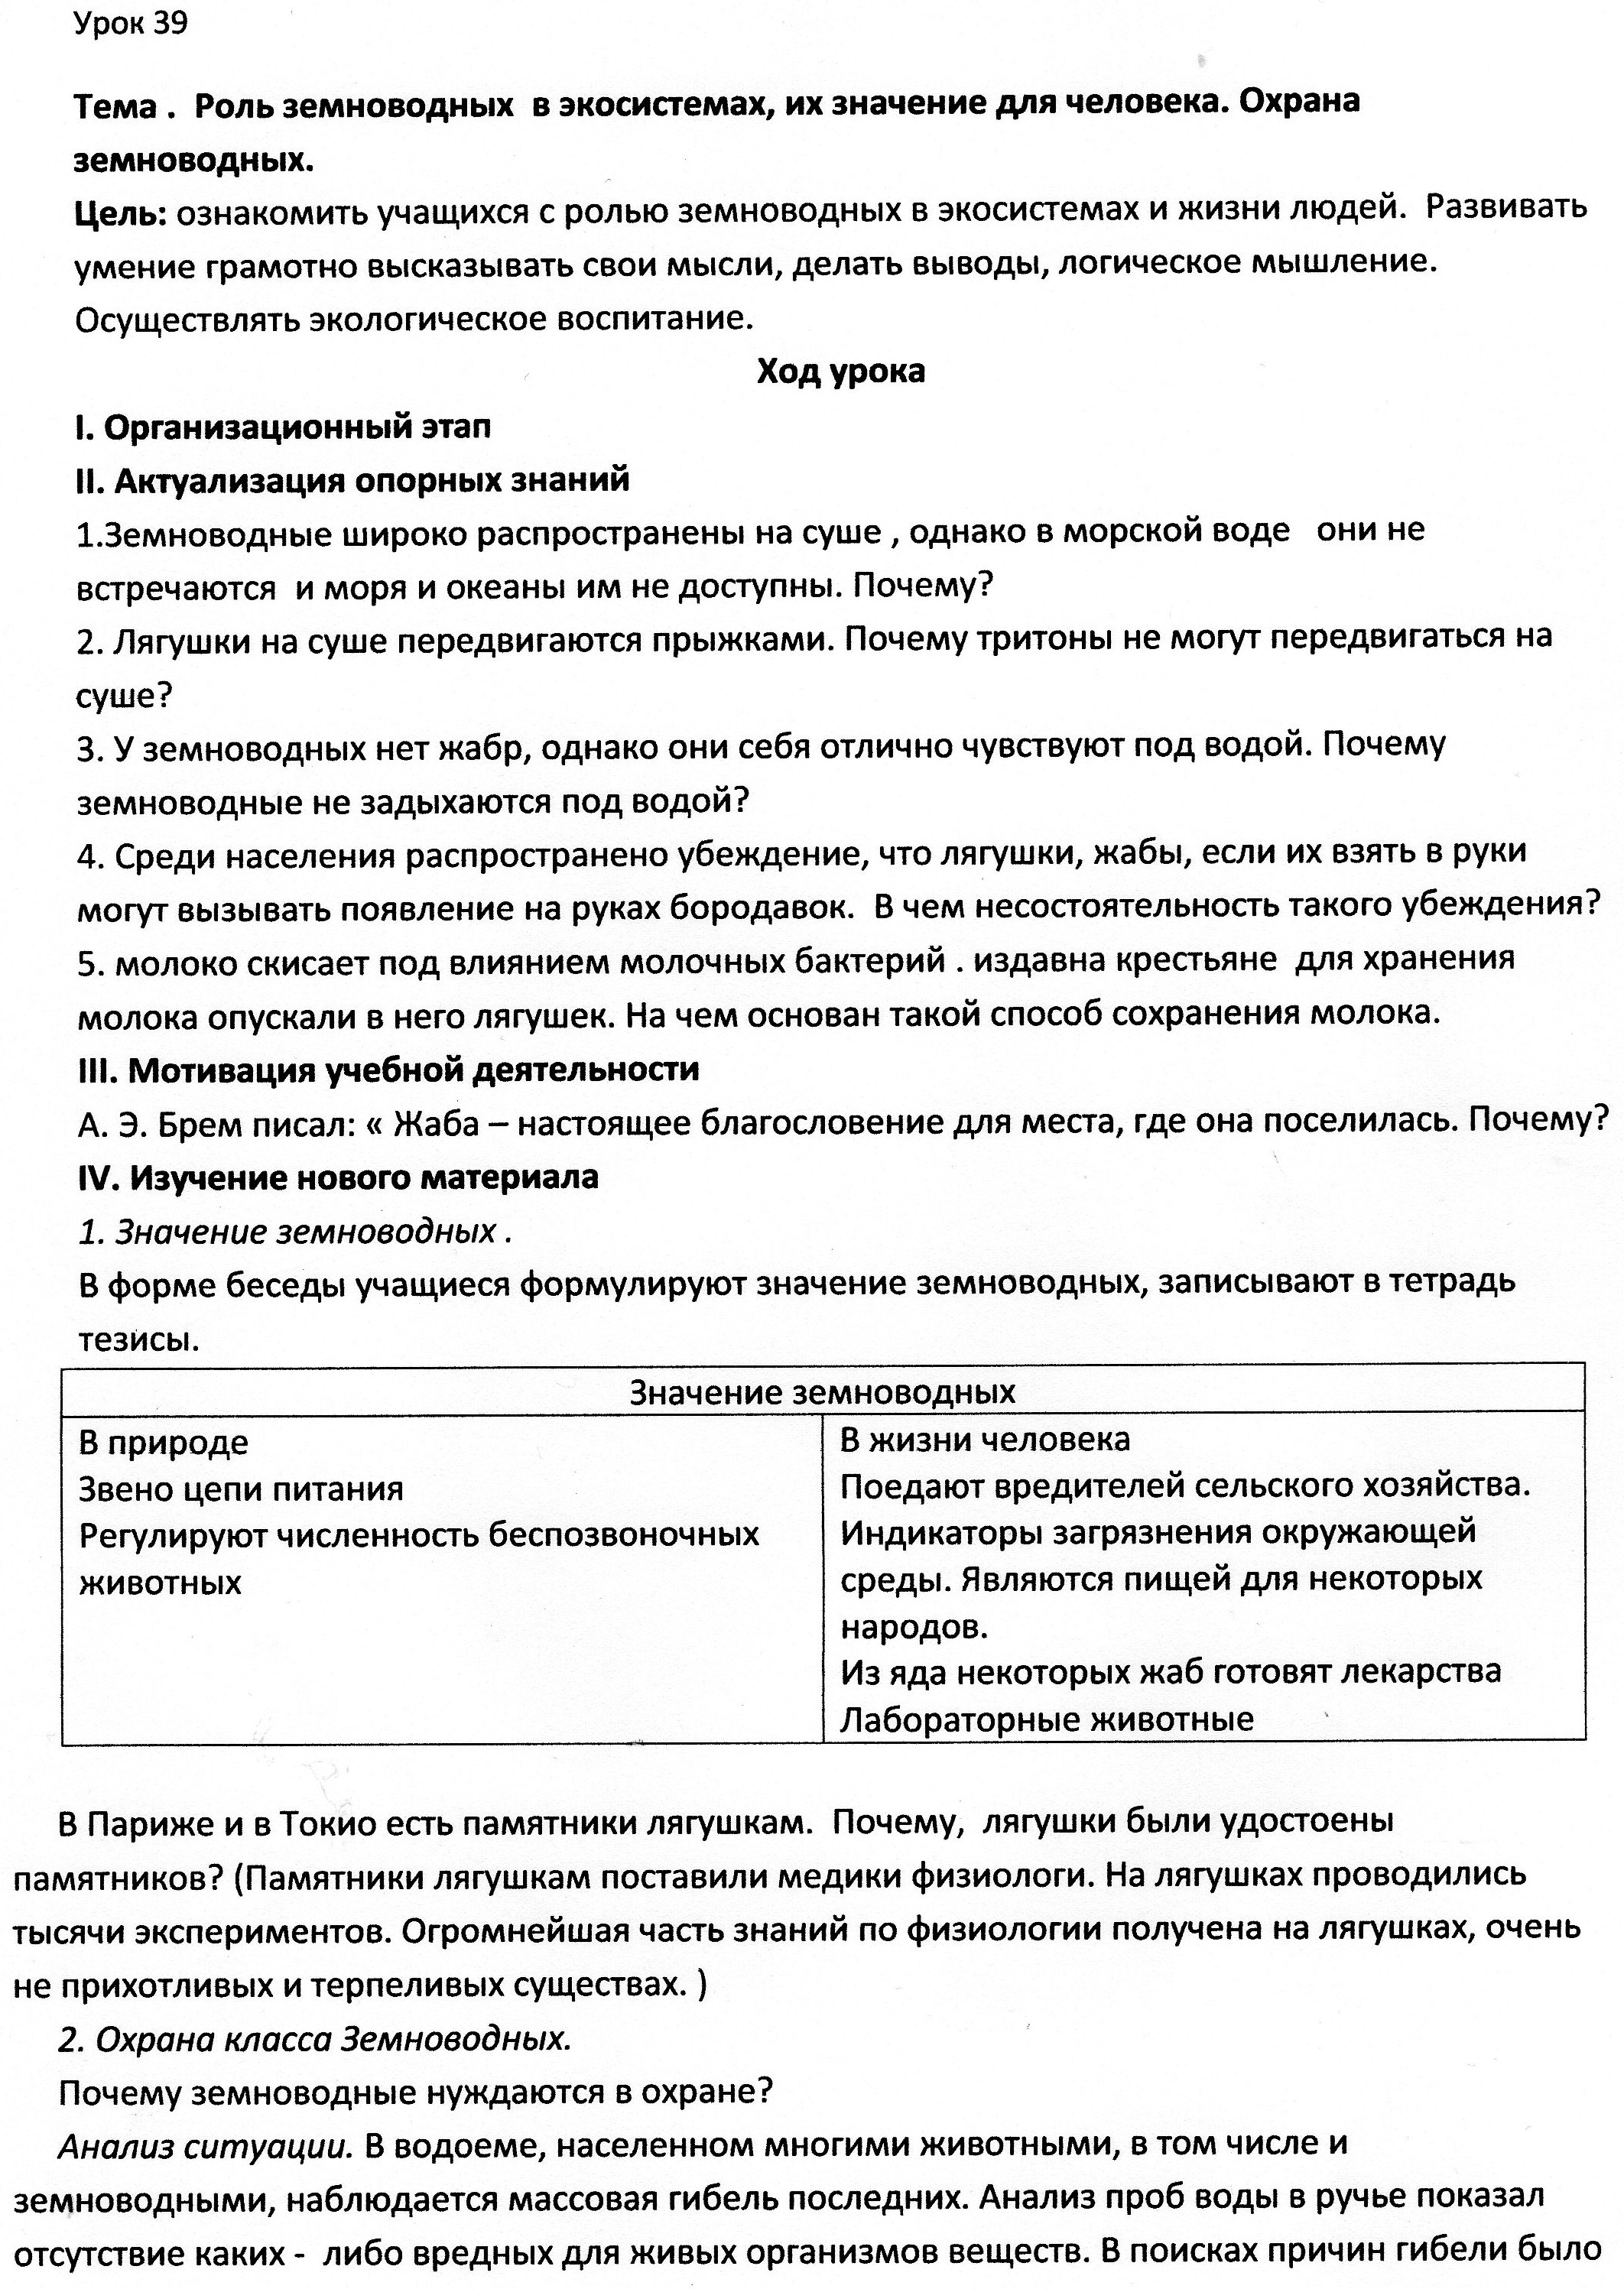 C:\Users\Лена\Pictures\img038.jpg